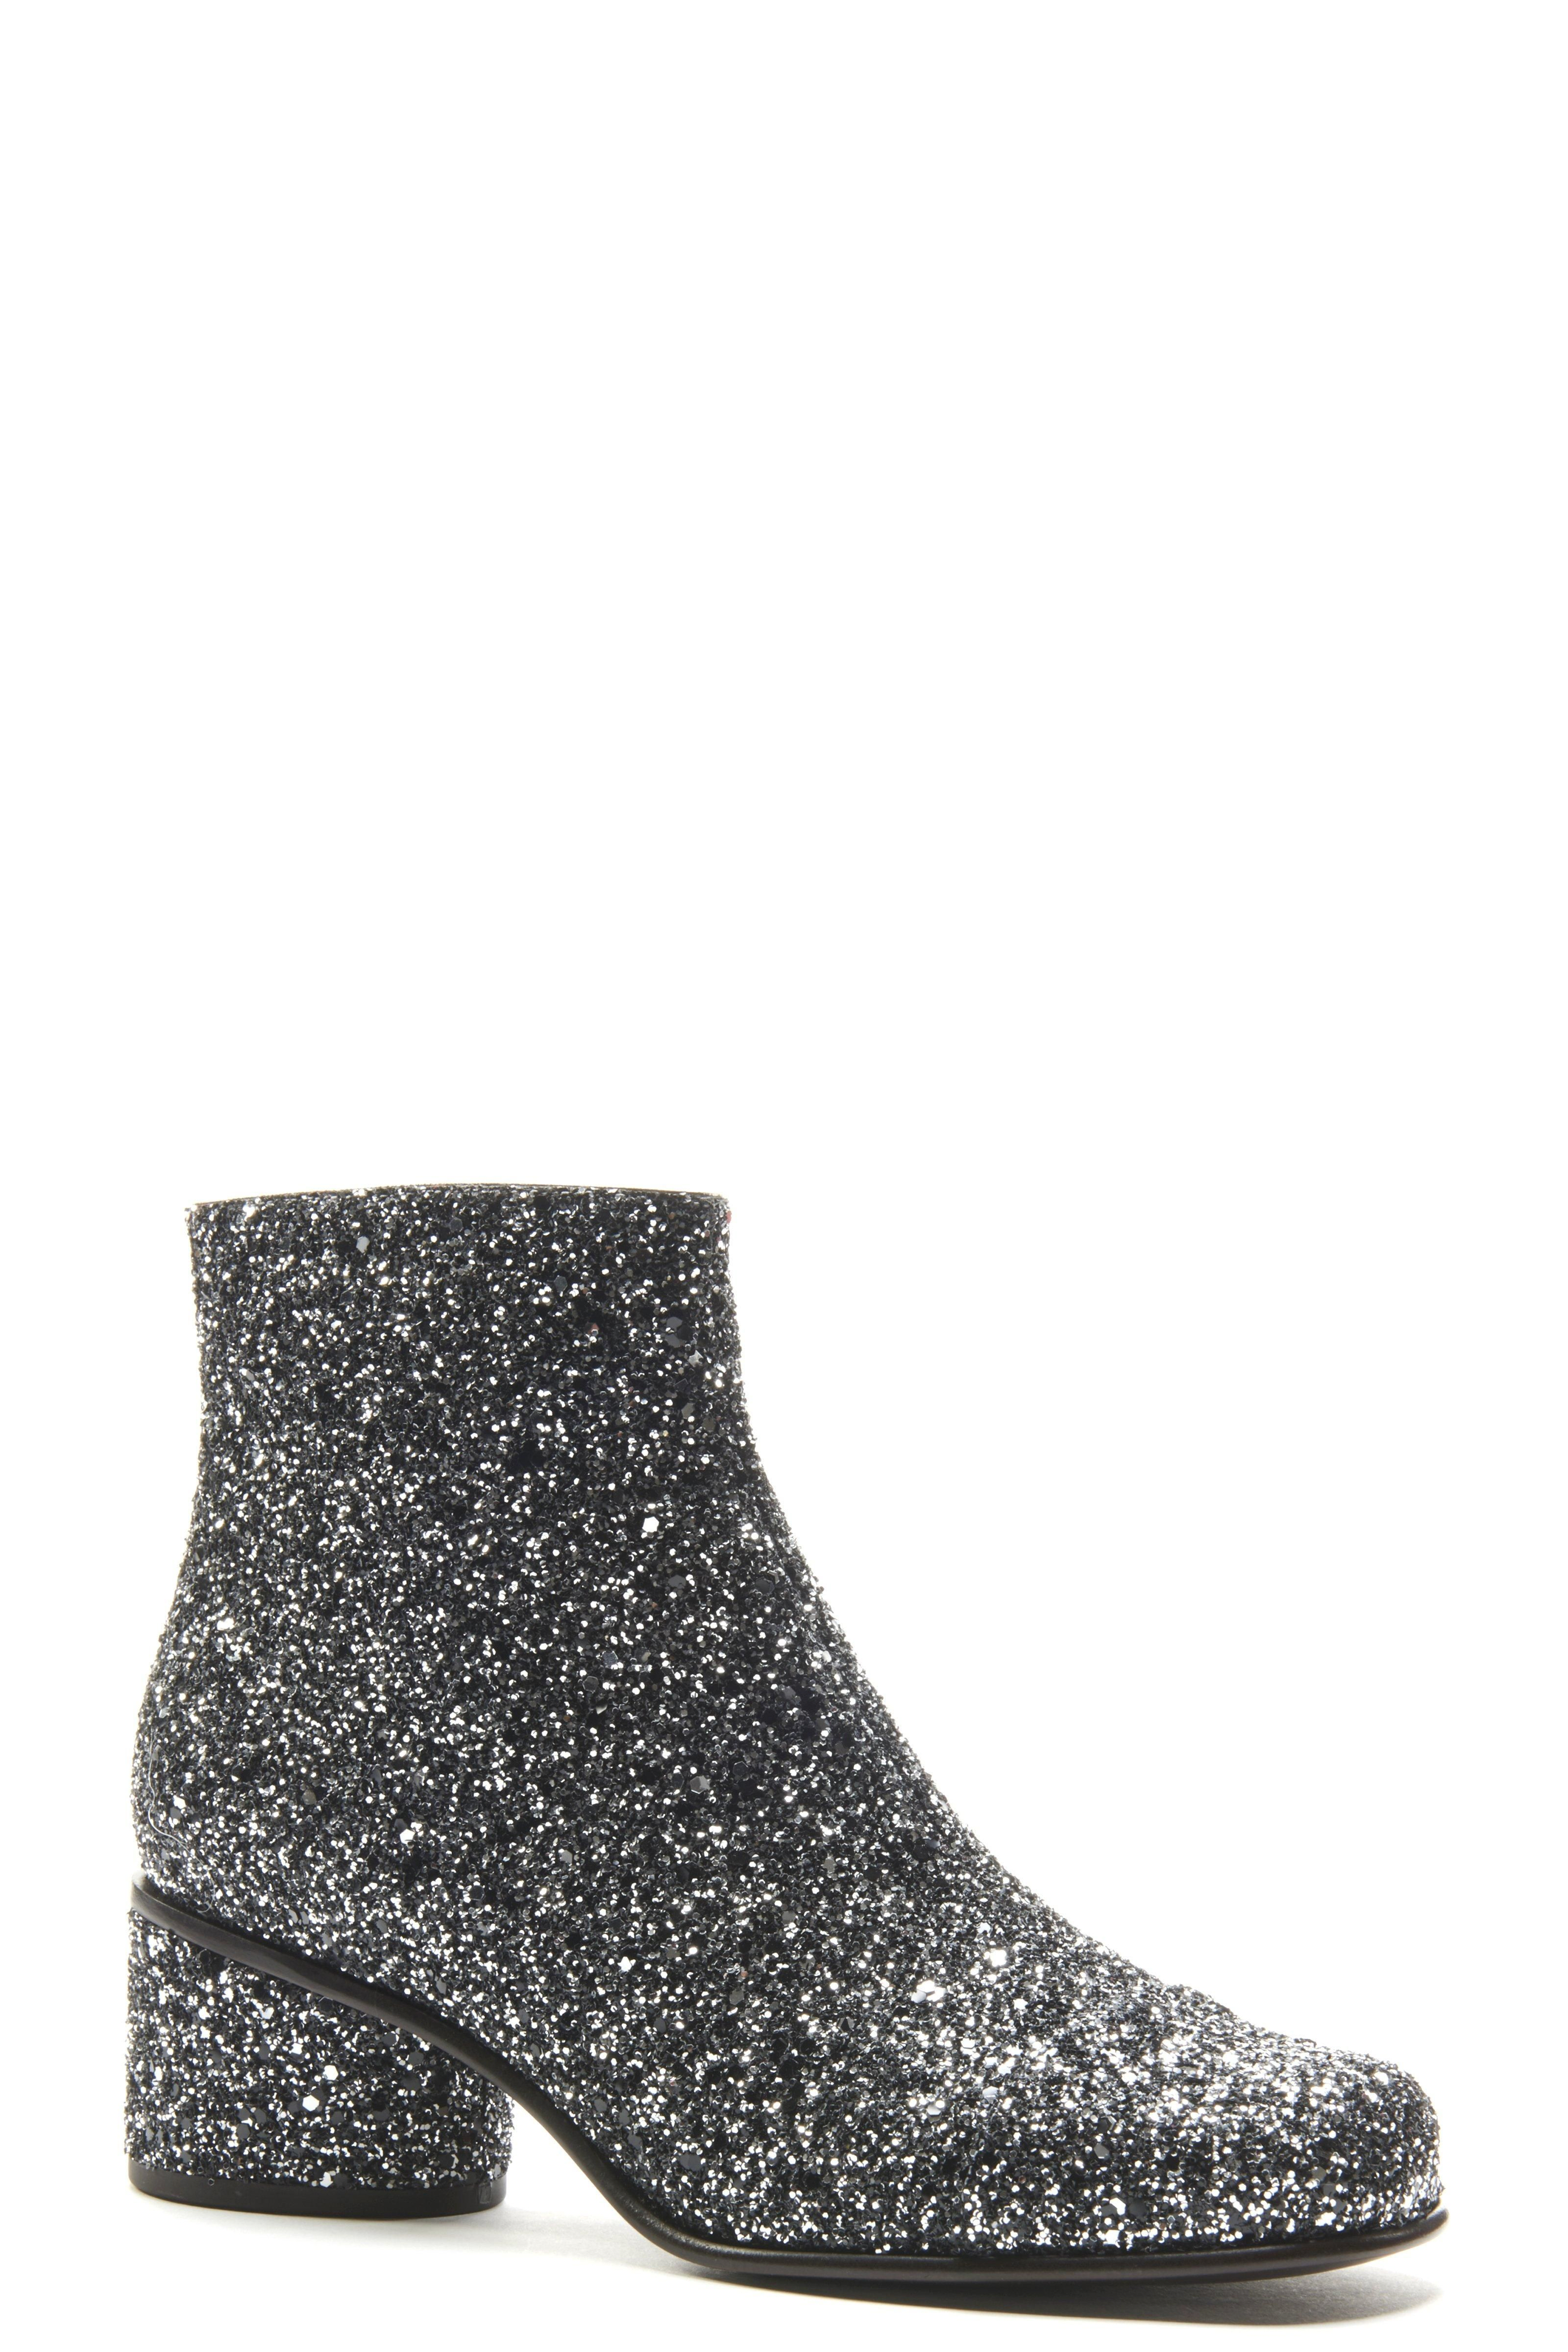 Marc Jacobs Glitter Ankle Boots For Sale Sale Online XSZ06CM8